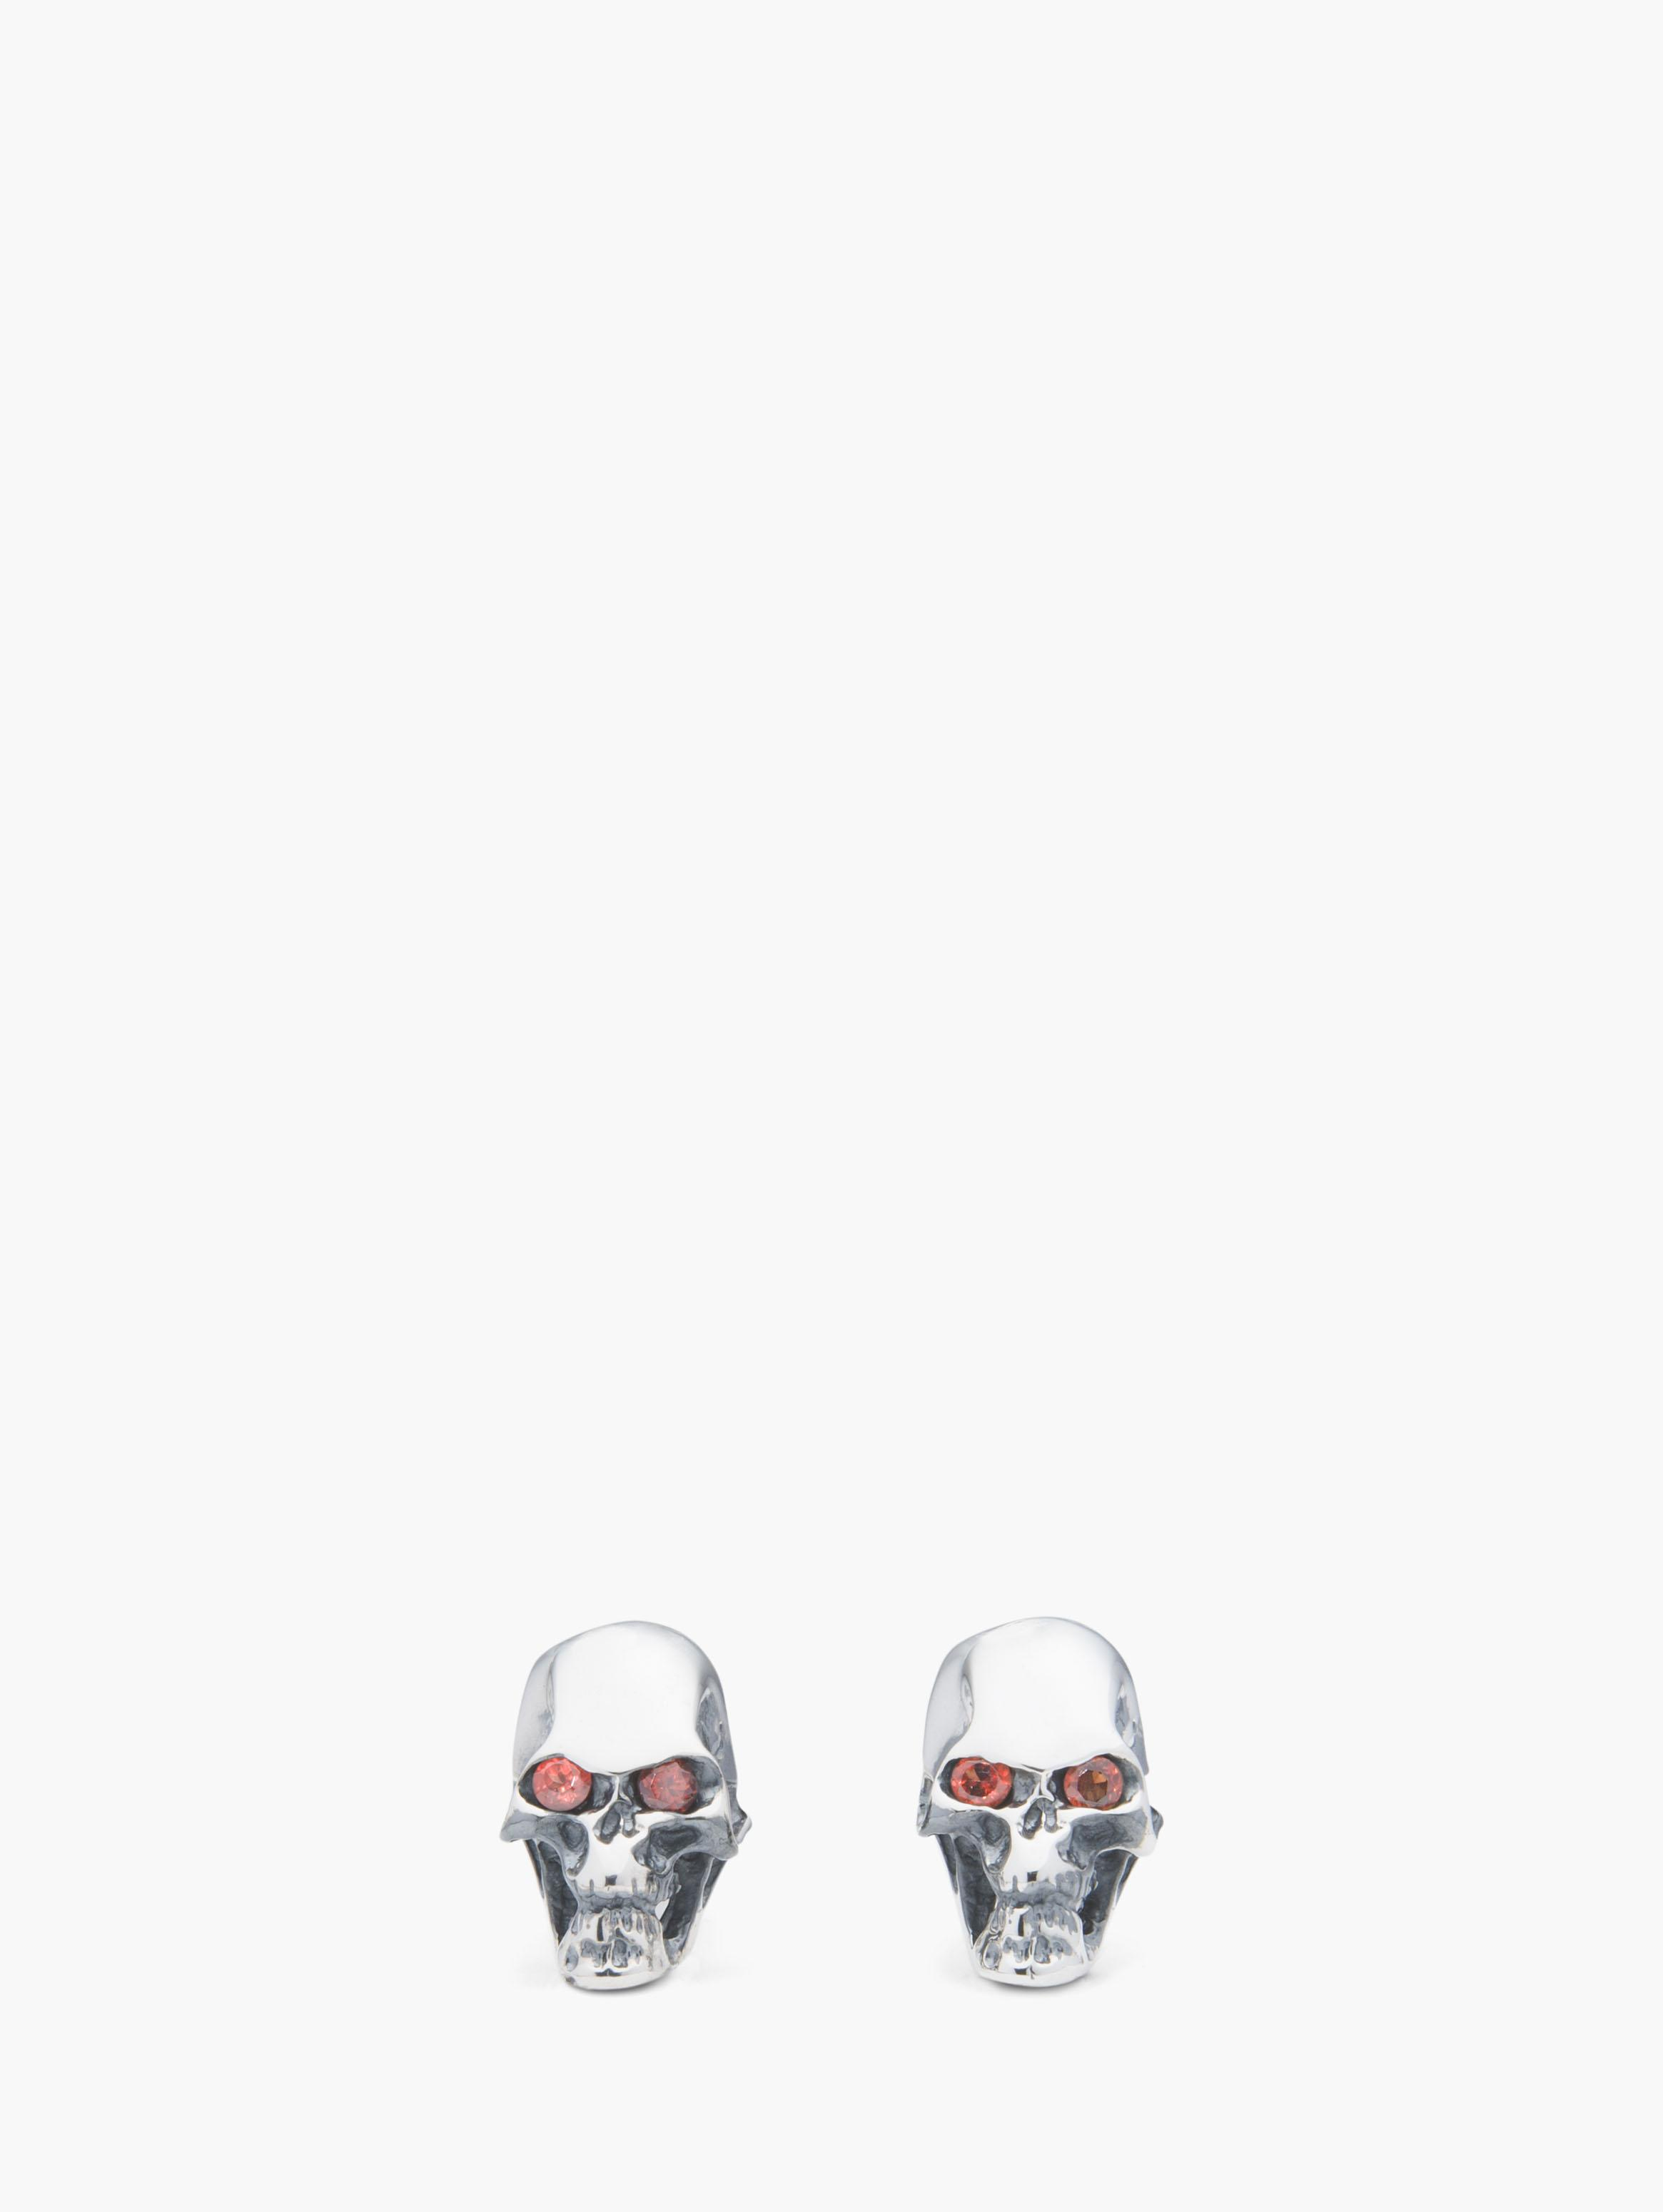 Screaming Scull Cufflink